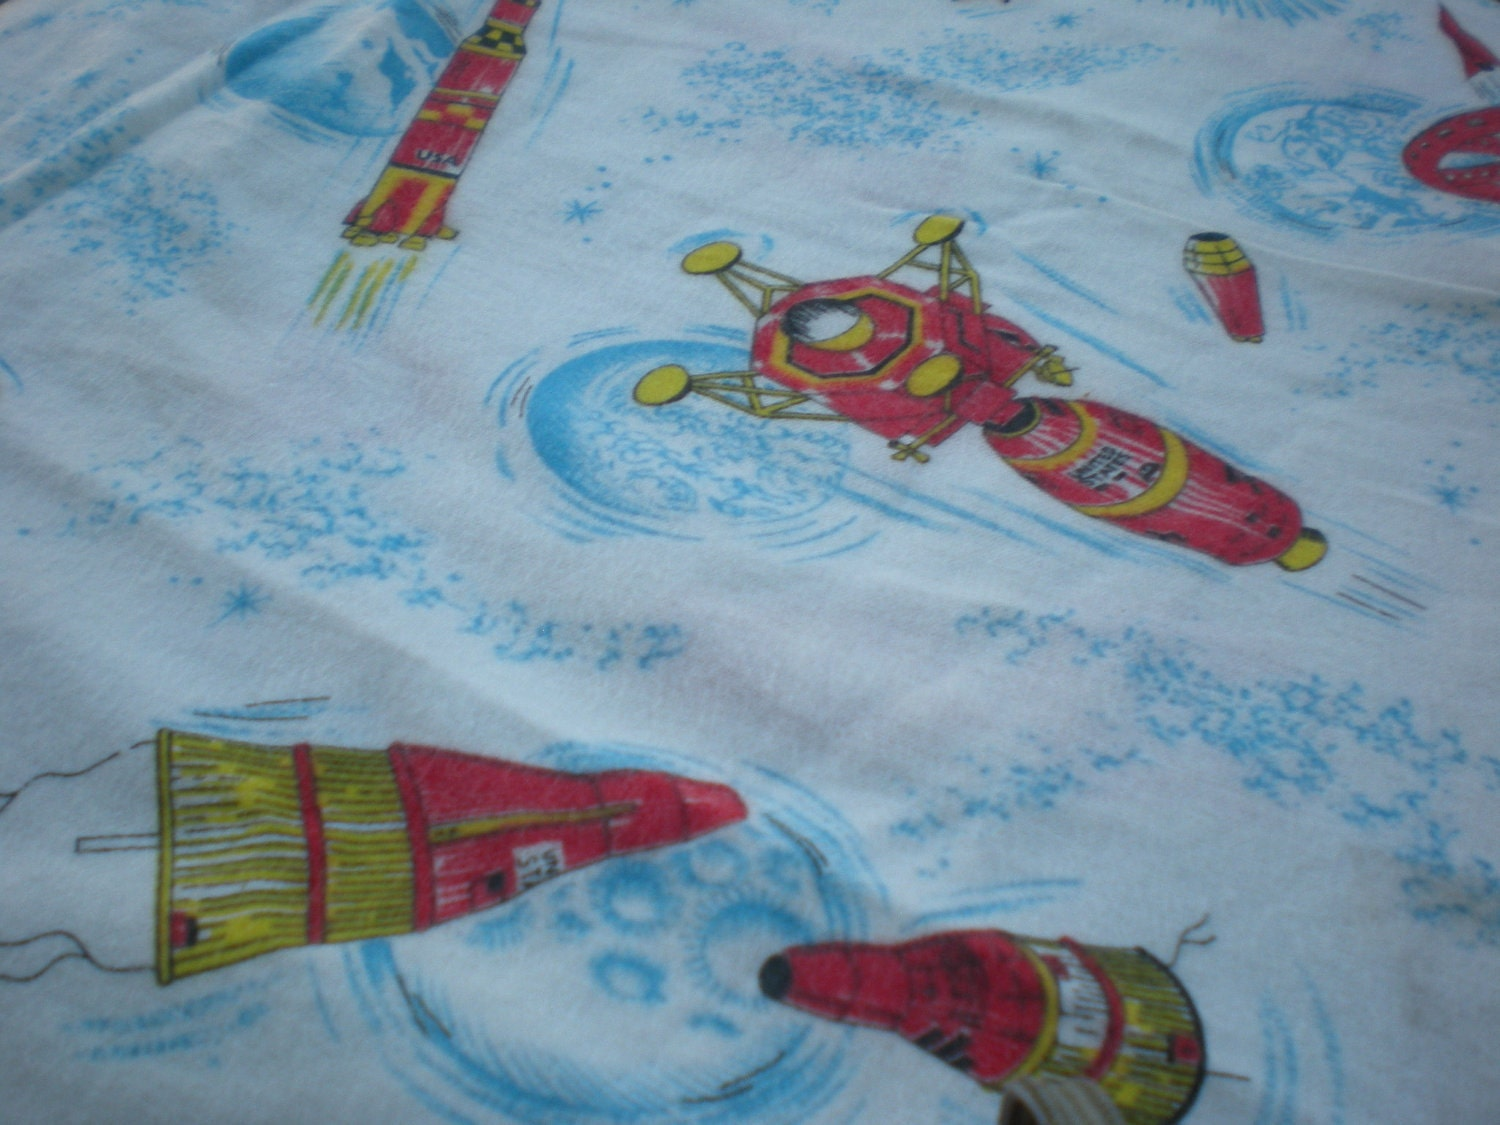 Sputnik 60 39 s vintage space age rocket fabric by retrokc on for Vintage space fabric